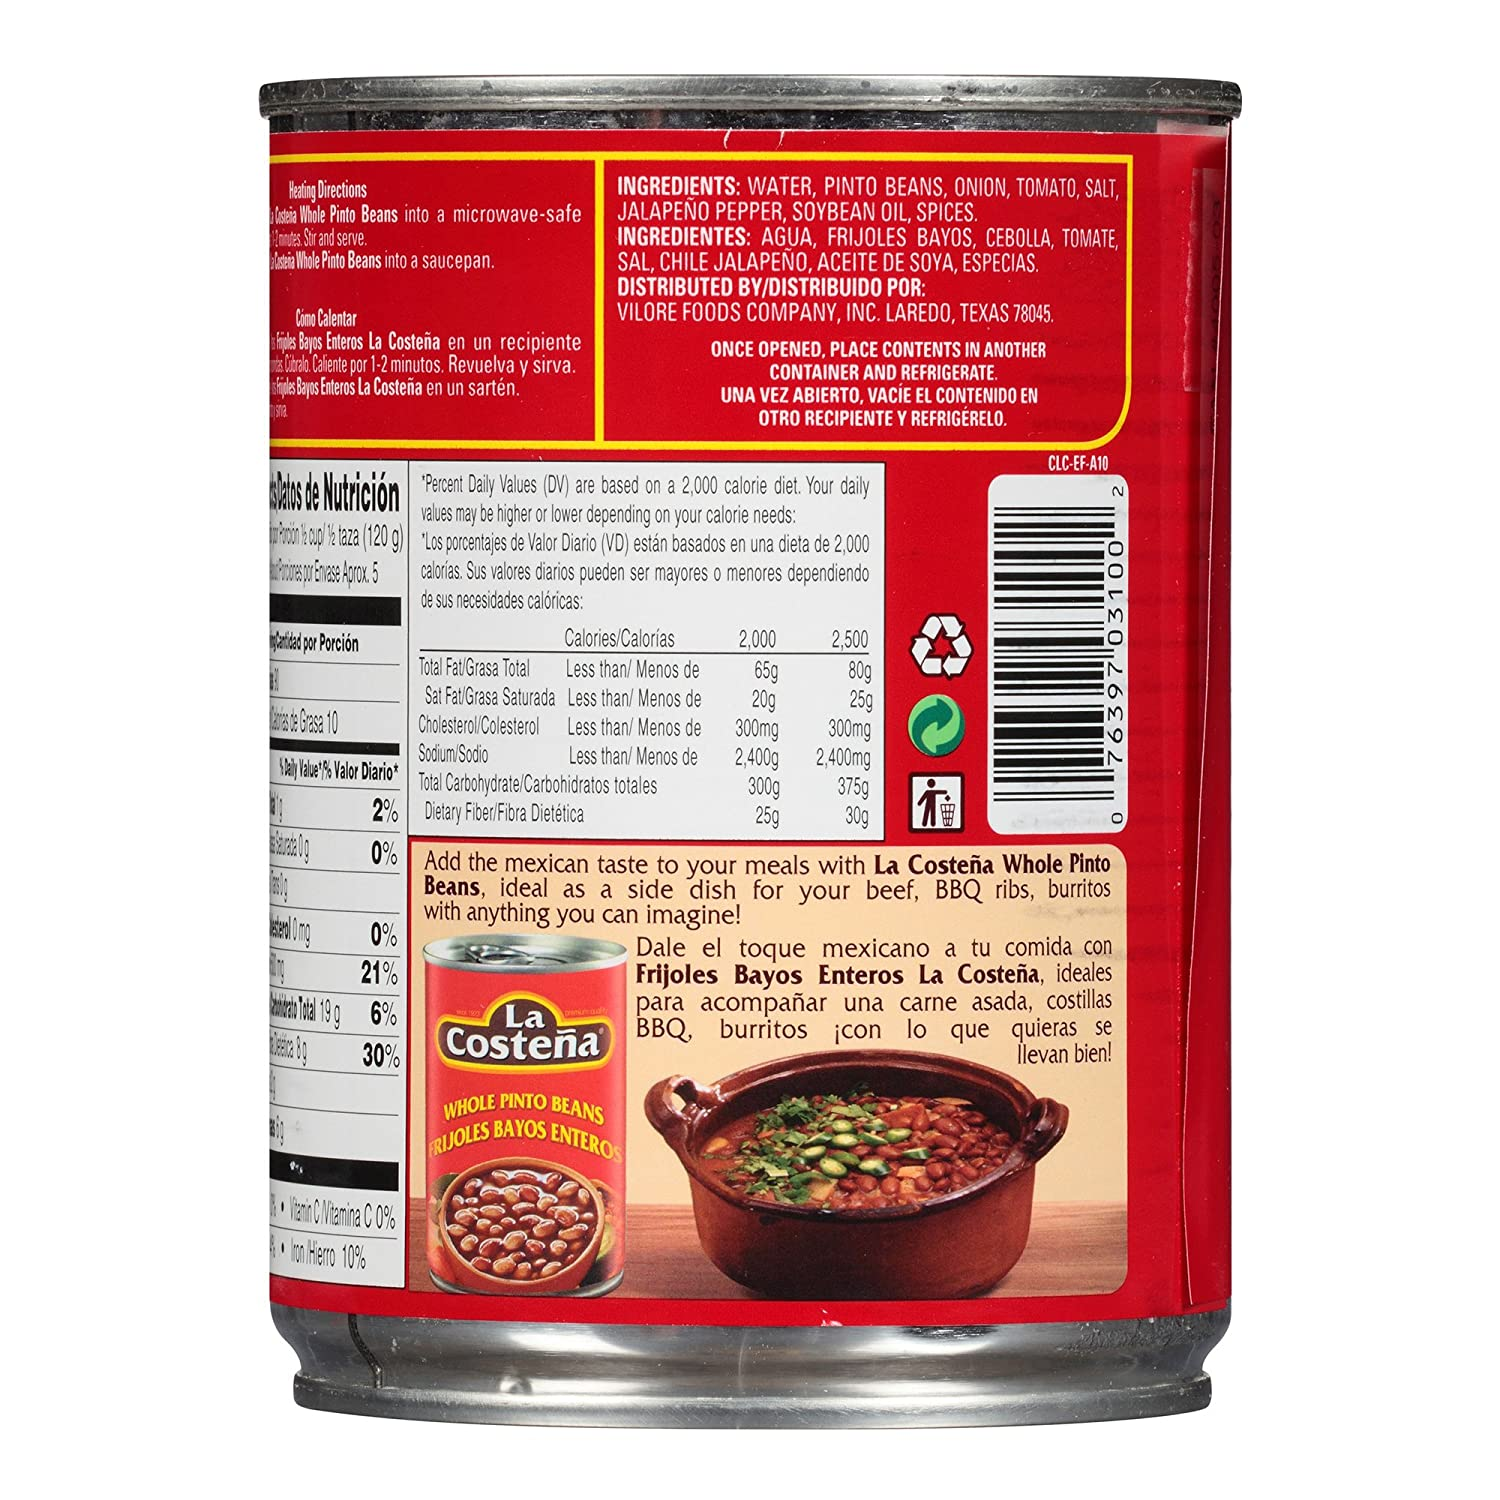 Amazon.com : La Costena Whole Pinto Beans, 19.75 oz (3) : Grocery & Gourmet Food